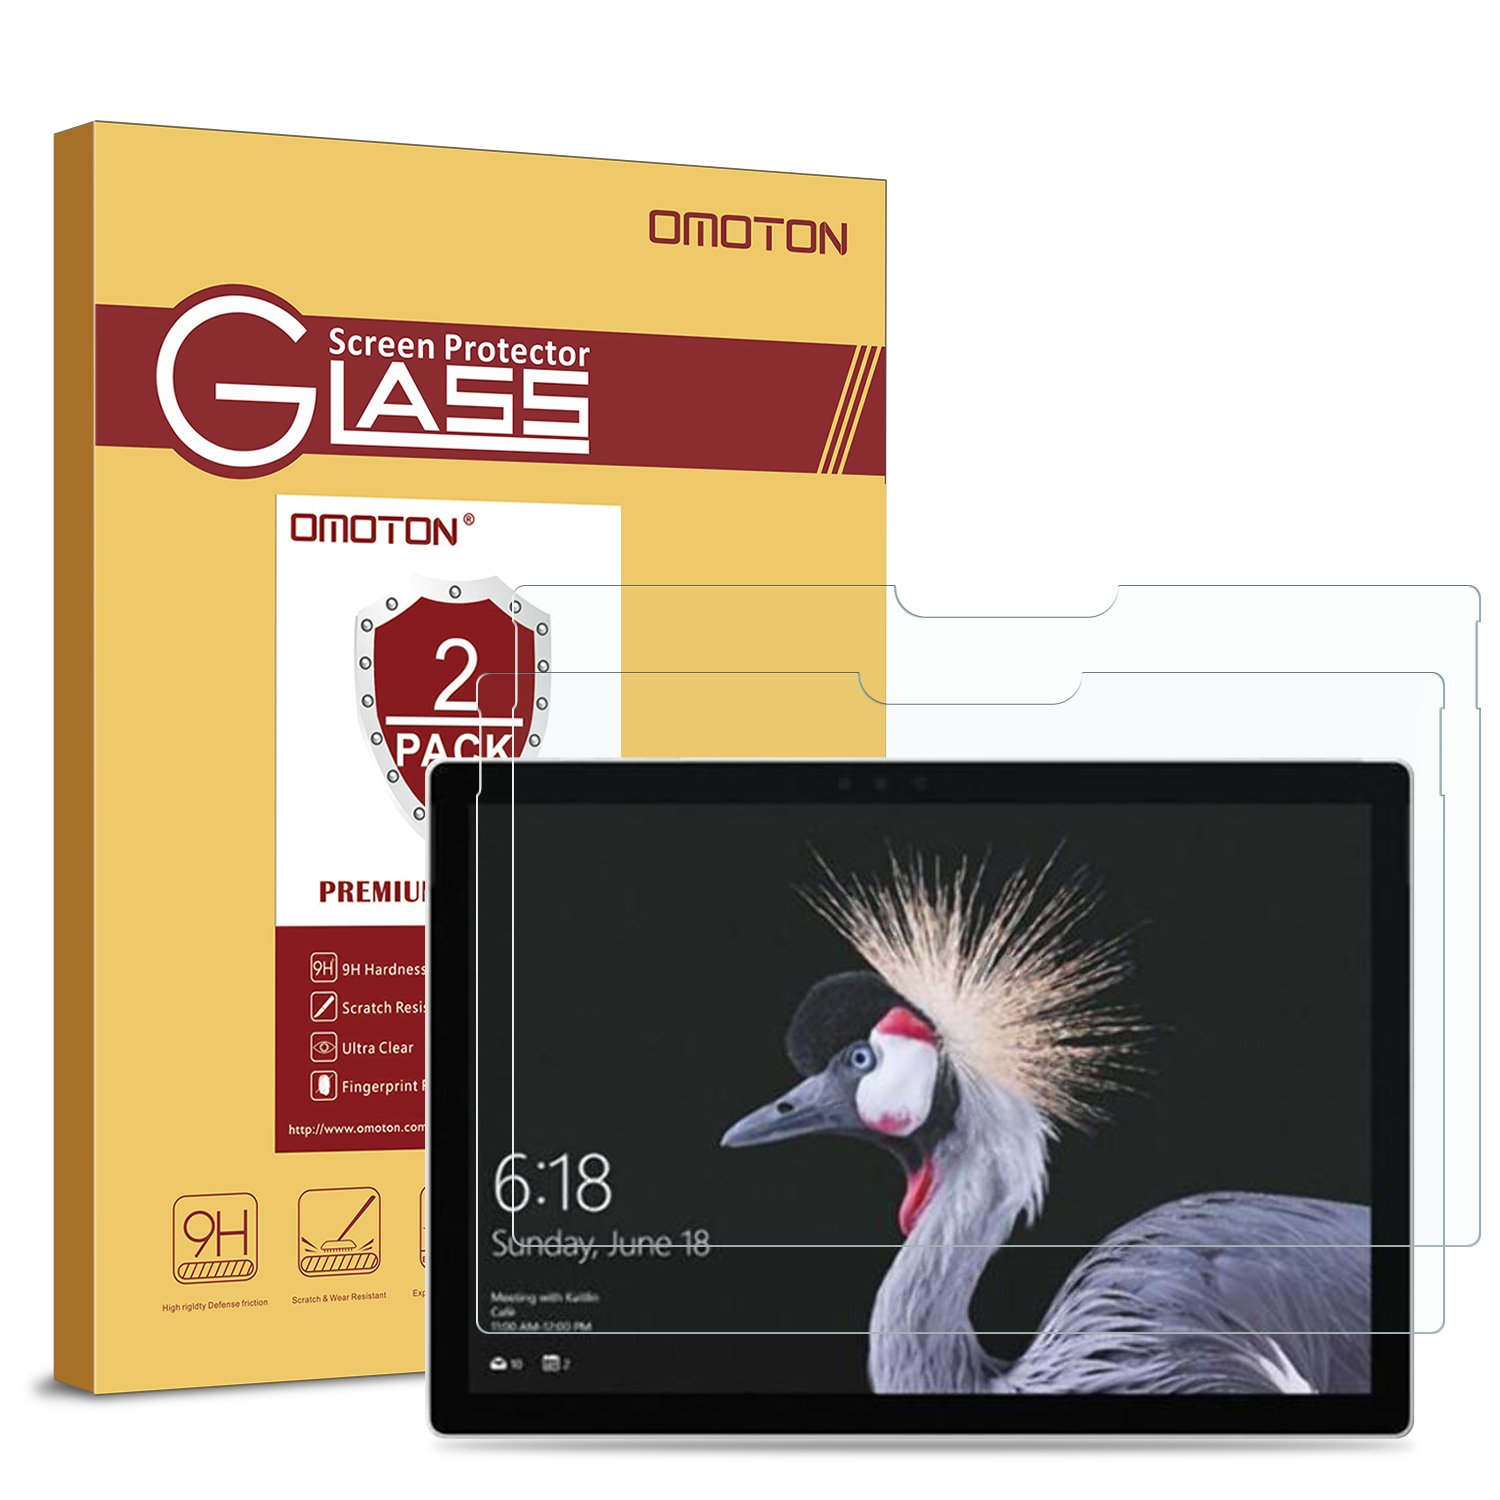 [2-Pack] New Surface Pro 2017/Surface Pro 4 Screen Protector - OMOTON Tempered Glass Screen Protector with [High Responsivity] [Scratch Resistant] [Bubble Free] [High Definition]